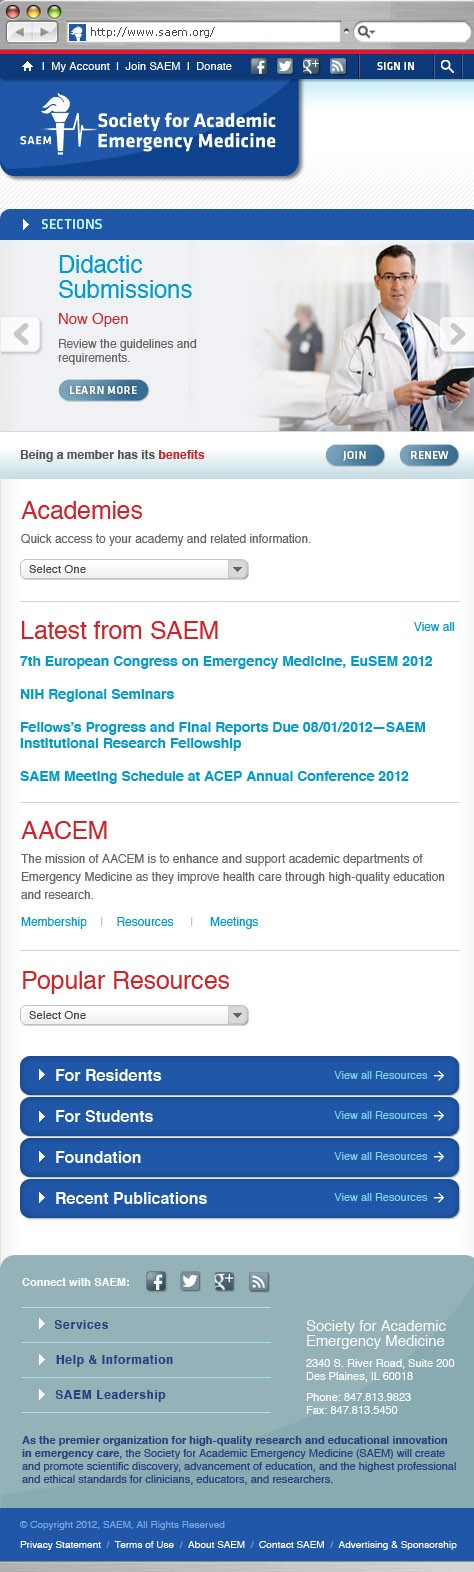 Society for Academic Emergency Medicine Website Redesign